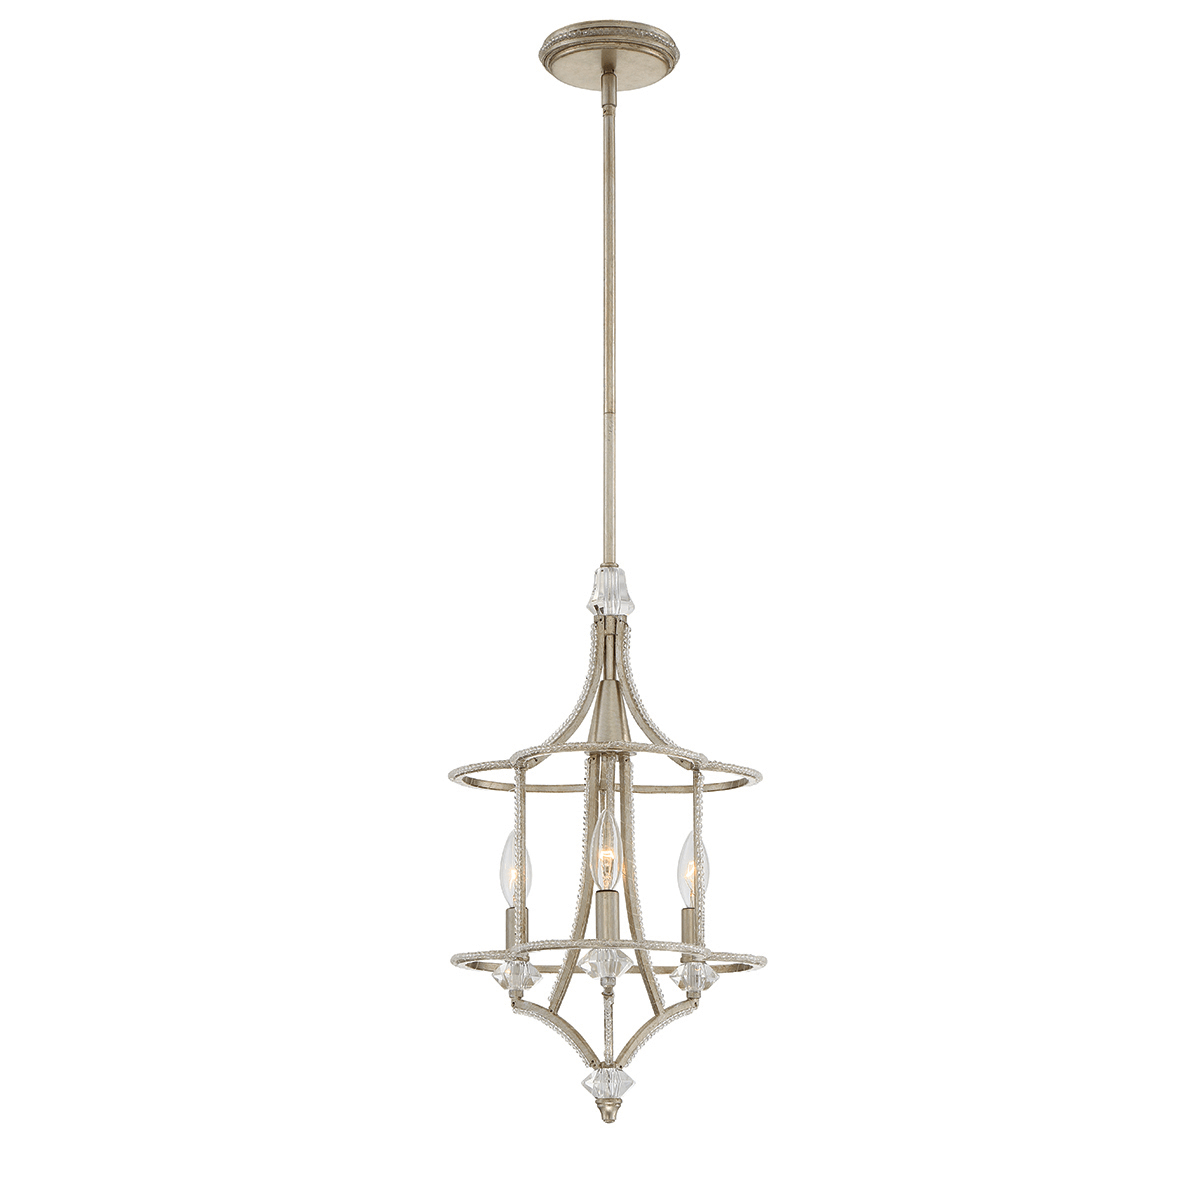 Chandeliers 3 Light Bulb Fixture With Silver Tone Finish